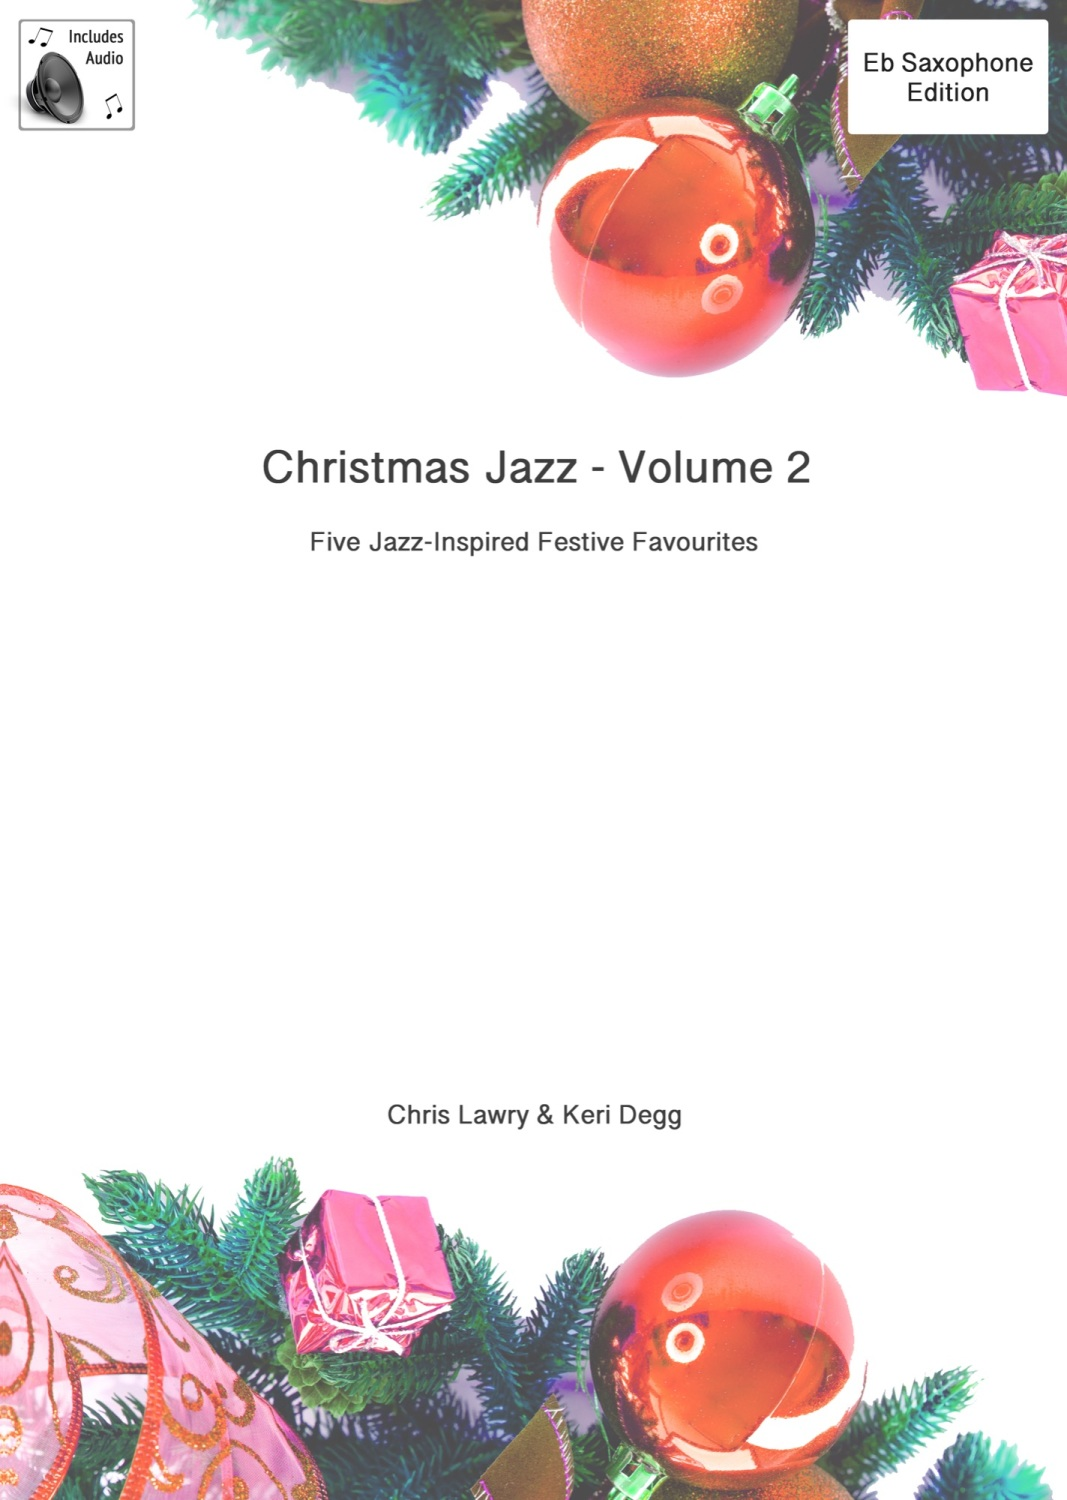 Christmas Jazz for Eb Sax (Tenor/Sop) & Piano Volume 2. Printed book/part w